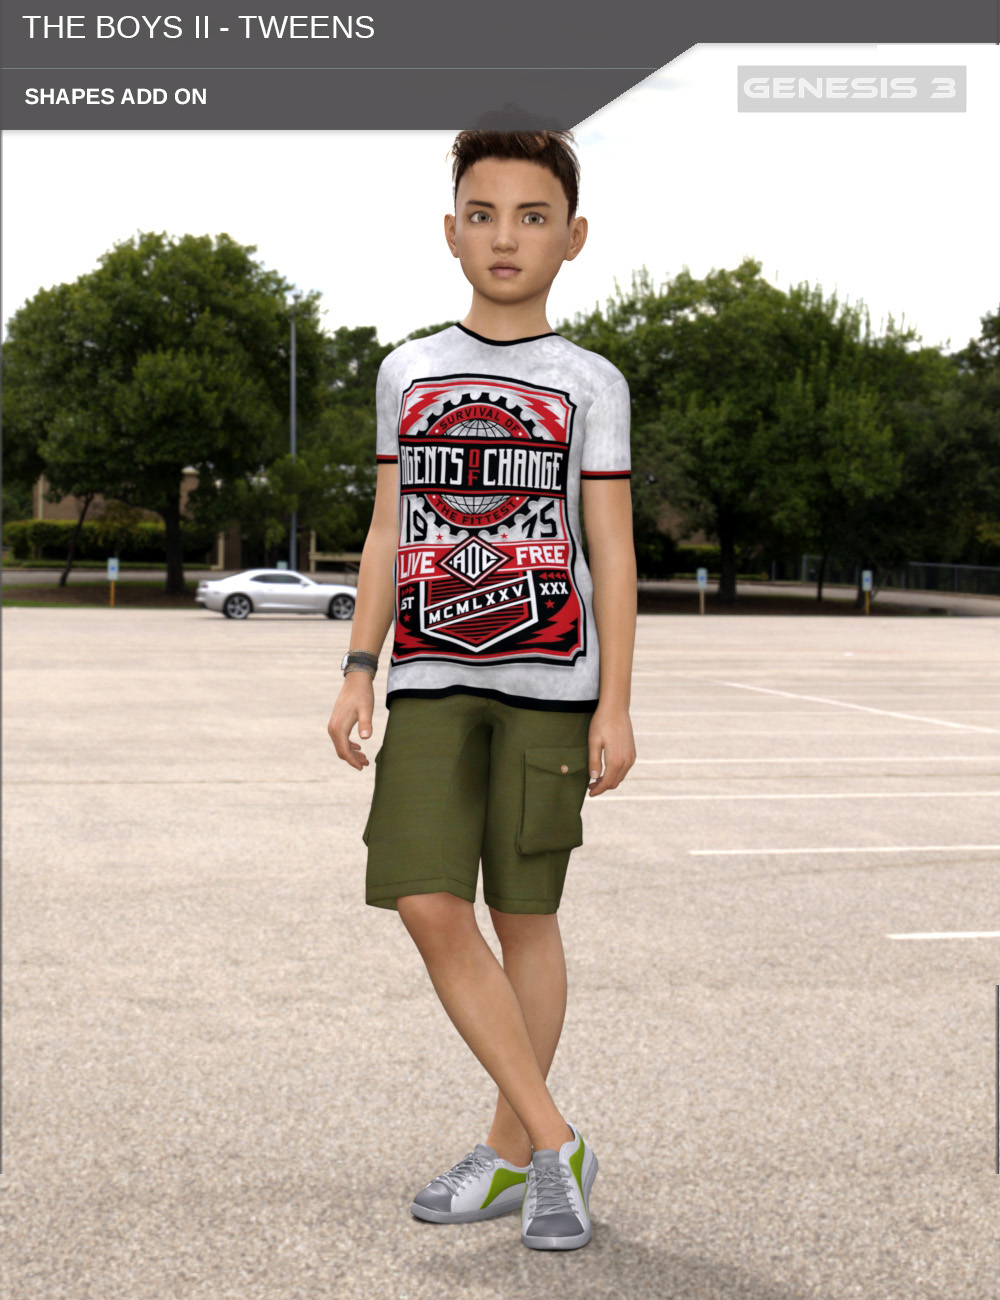 The Boys II - Tweens - Shapes for Genesis 3 Male by SF-Design